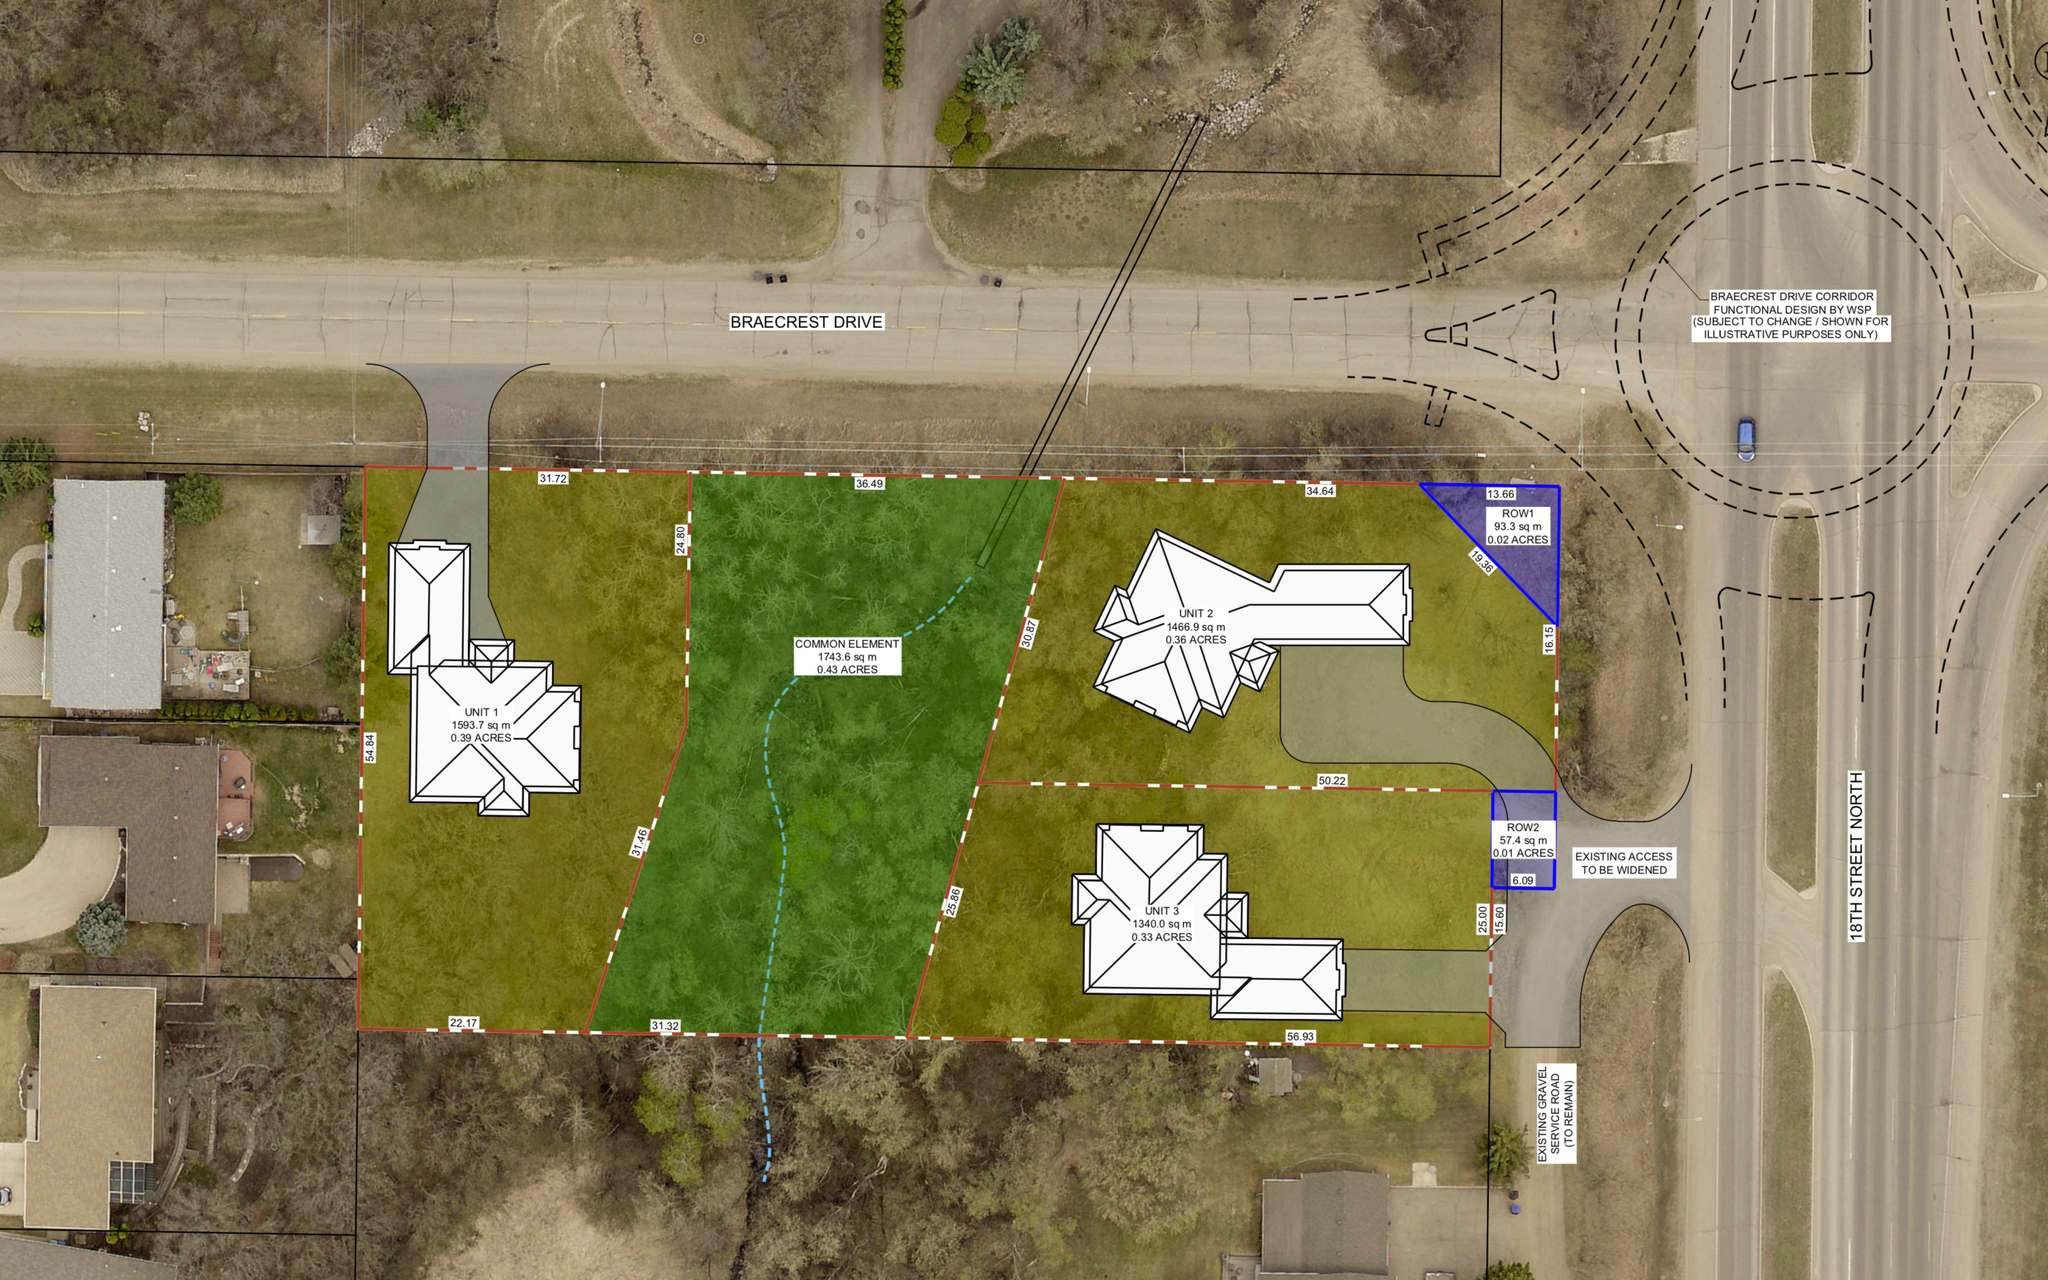 This updated map included in the agenda for Tuesday's Brandon City Council meeting shows what the development at the corner of 18th Street North and Braecrest Drive would look like with the number of units reduced from five to three. (Screenshot)</p>